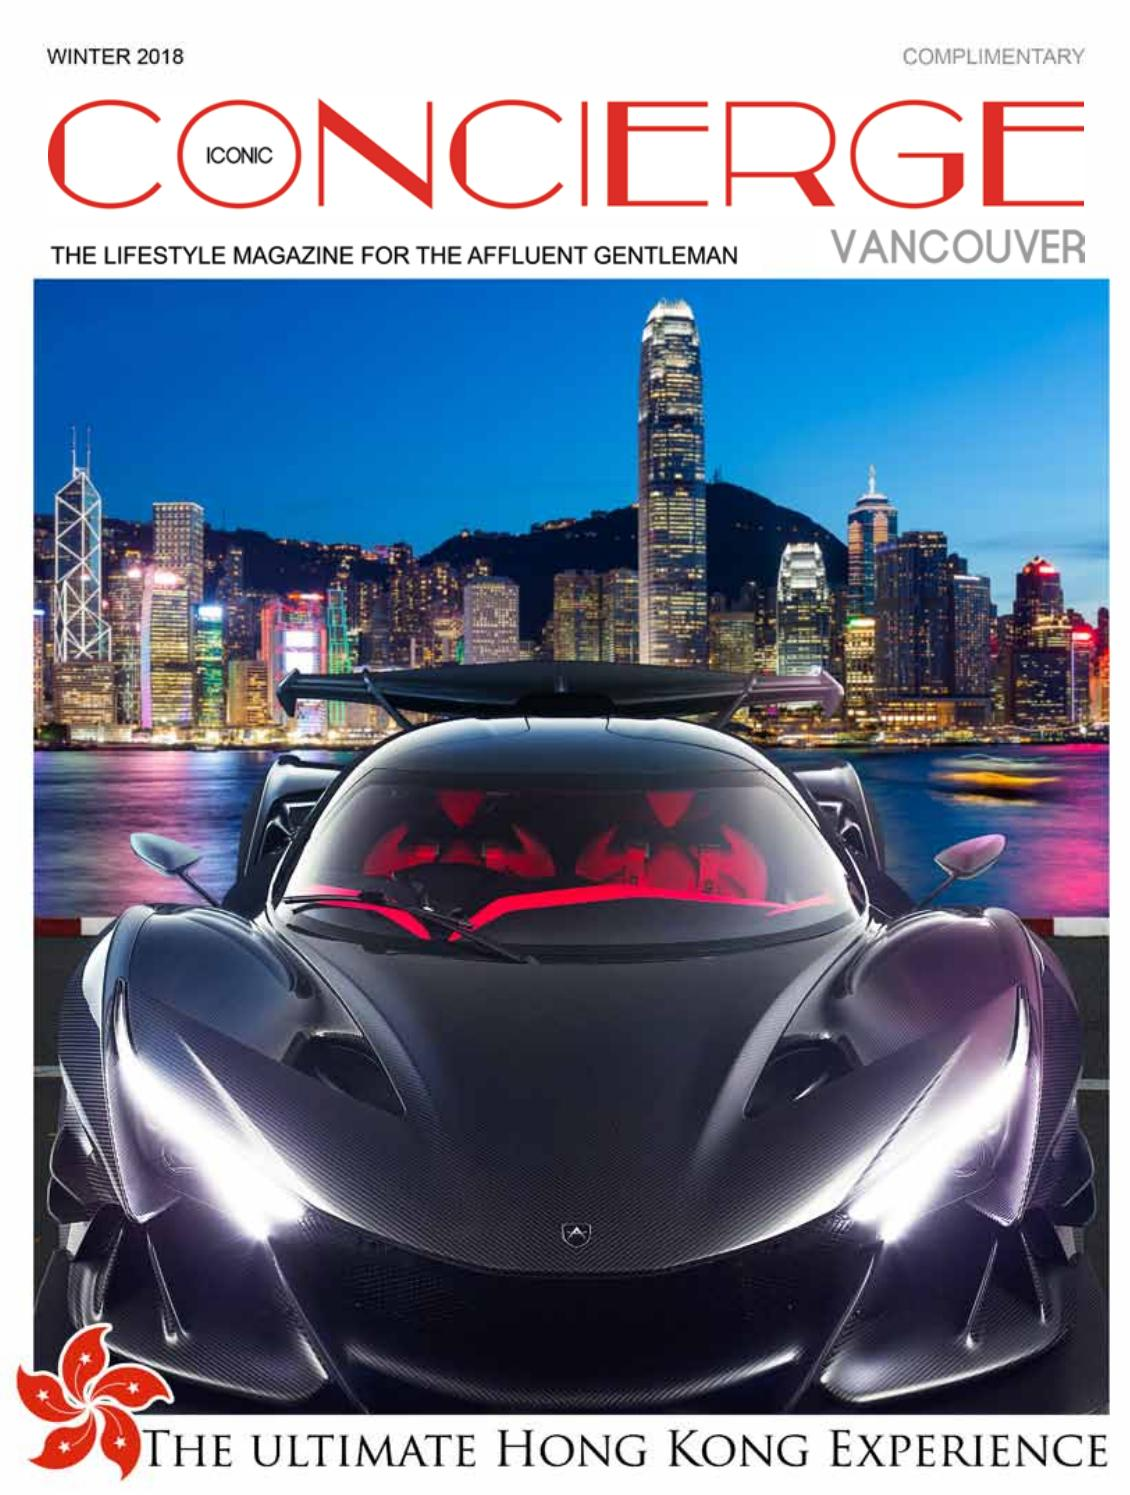 Iconic Concierge Vancouver Winter 2018 by Iconic Concierge